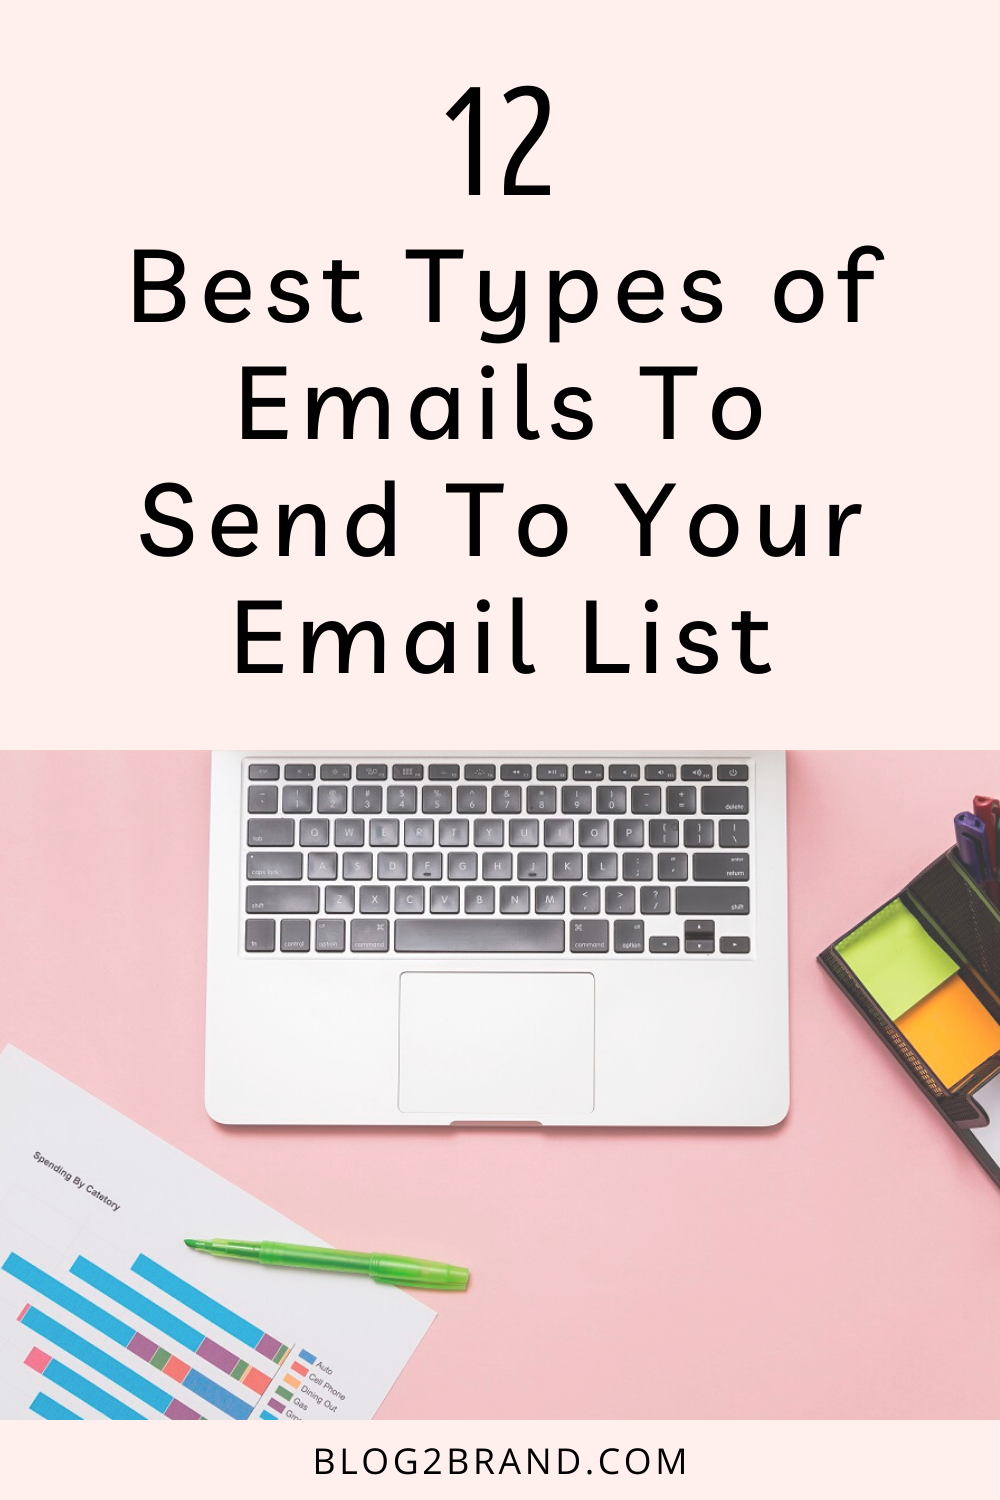 9 Types of Marketing Emails Your Business Should Be Sending